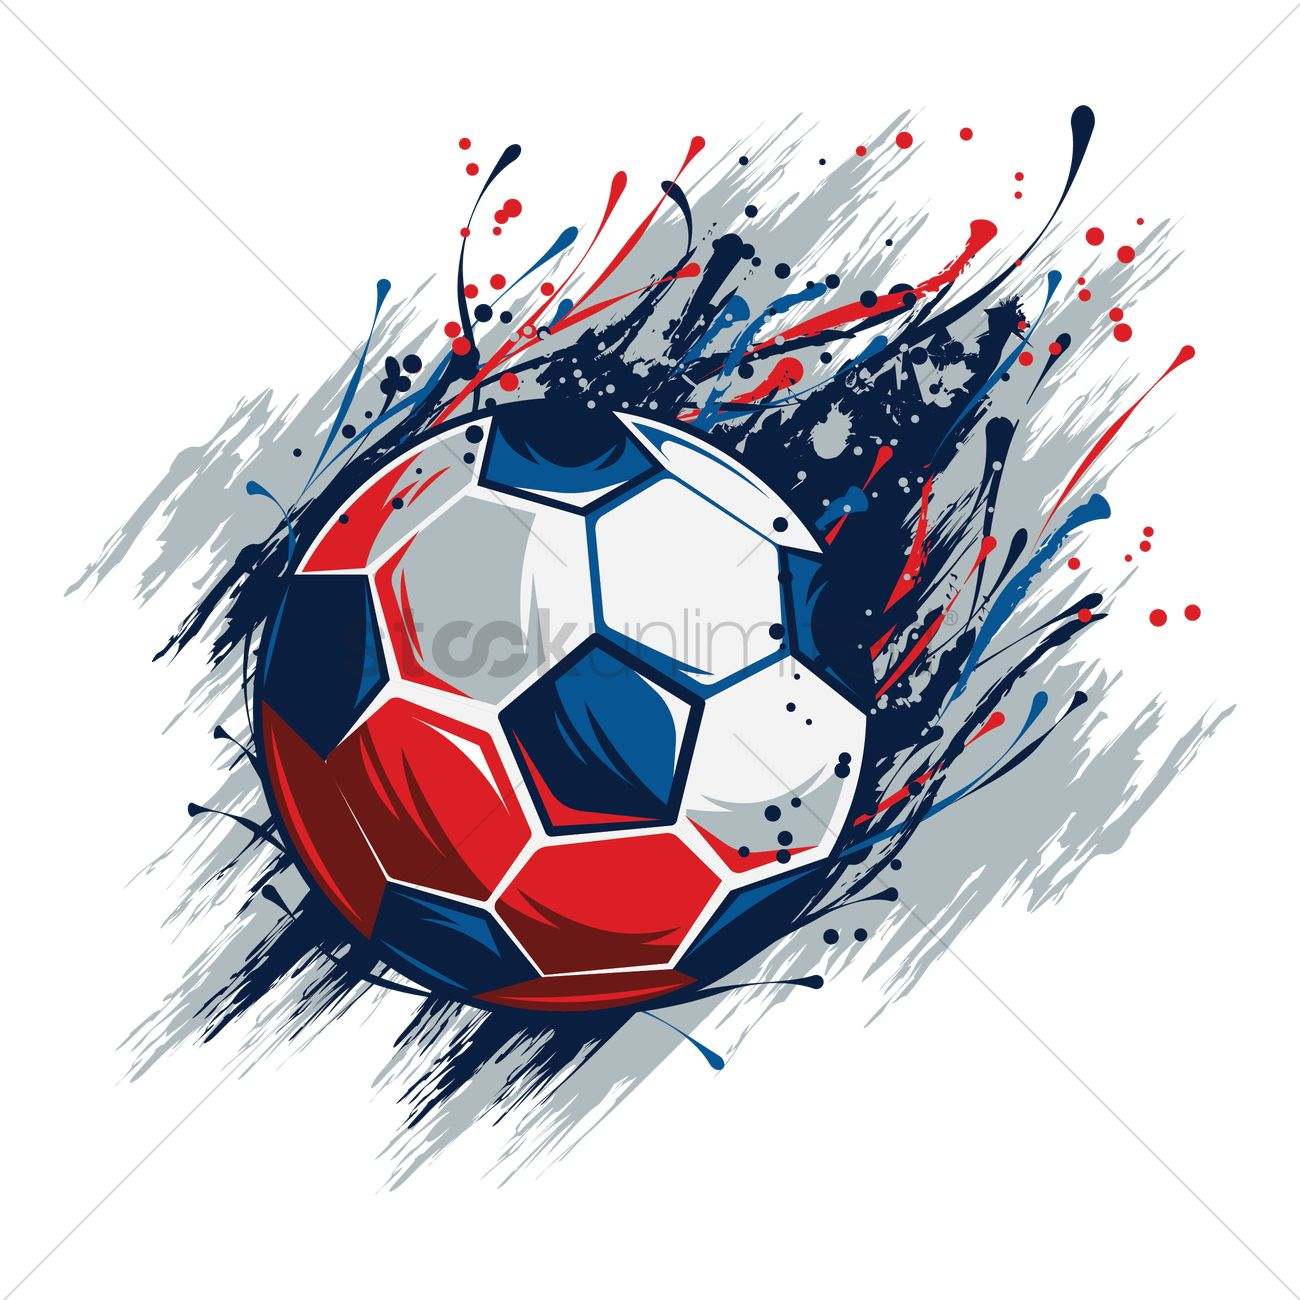 soccer ball design vector image 1818068 stockunlimited